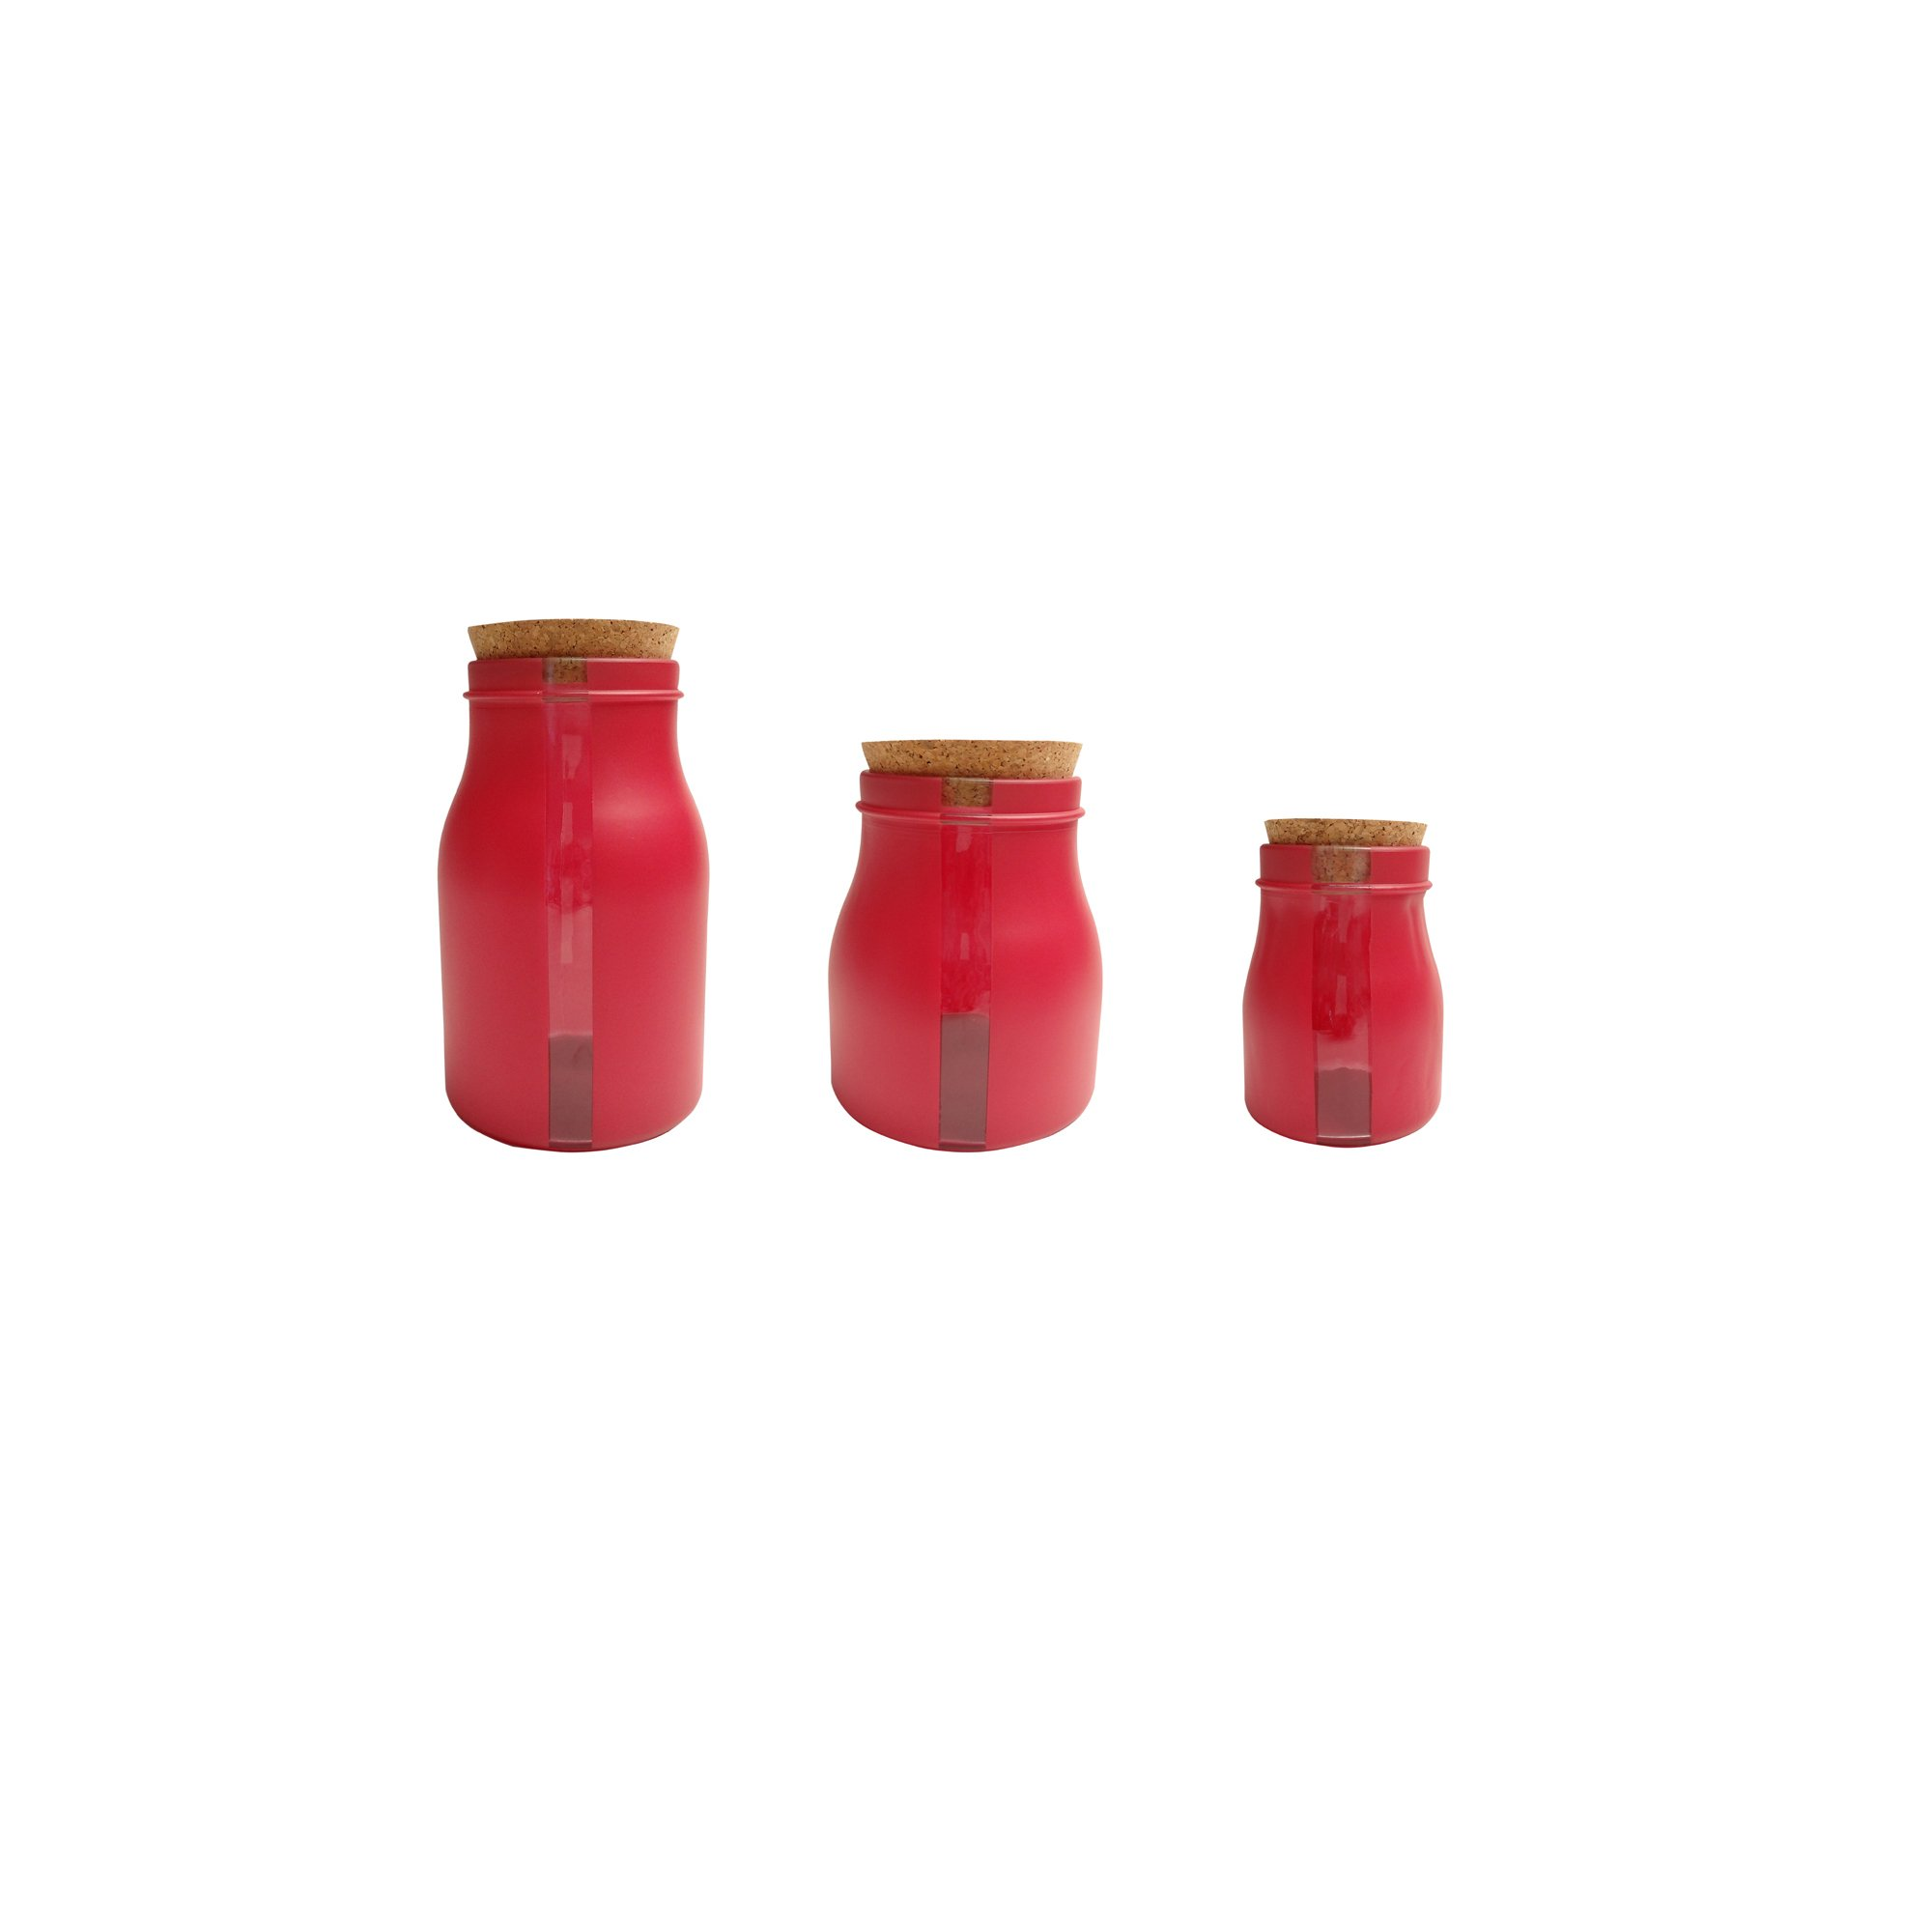 French Home Set of 3, 68-ounce,40-ounce,8.5-ounce Red Vertical Window Jars